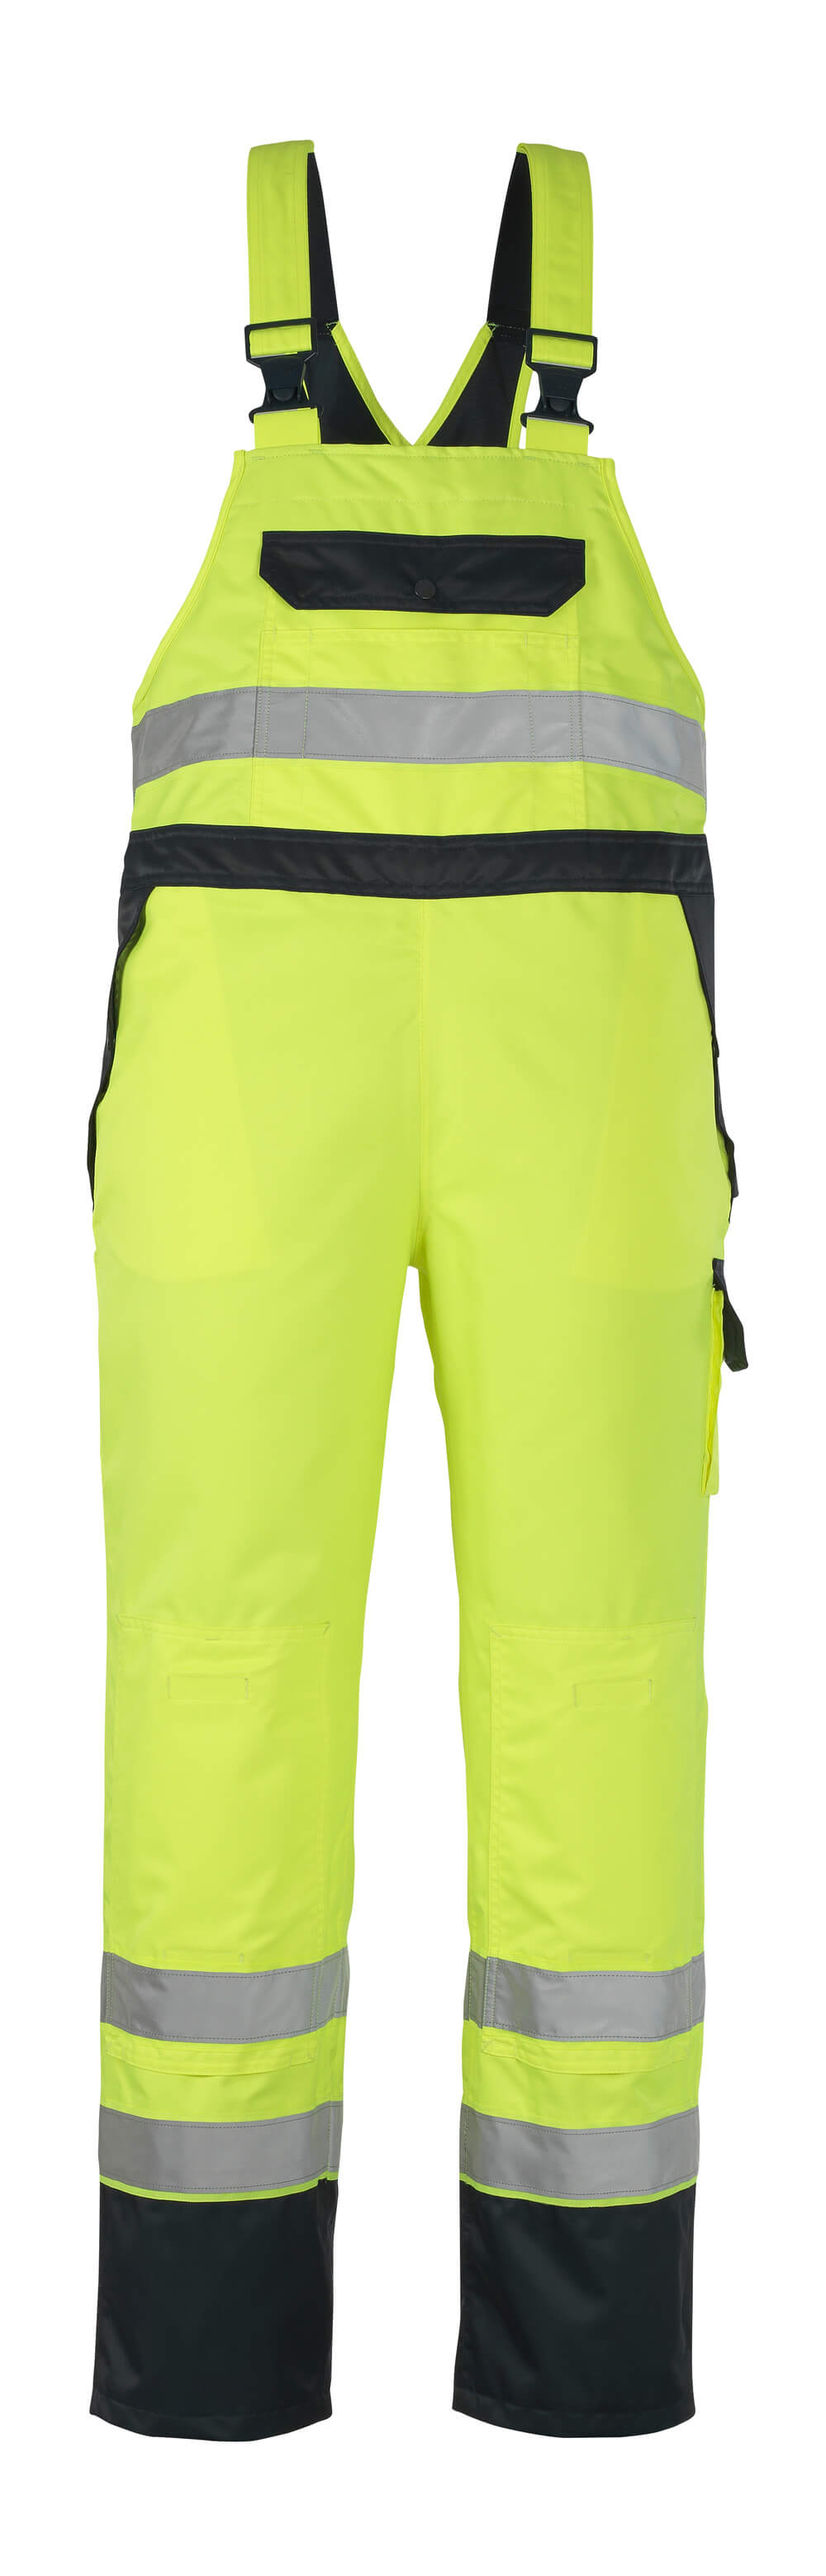 07092-880-171 Bib & Brace Over Trousers - hi-vis yellow/navy